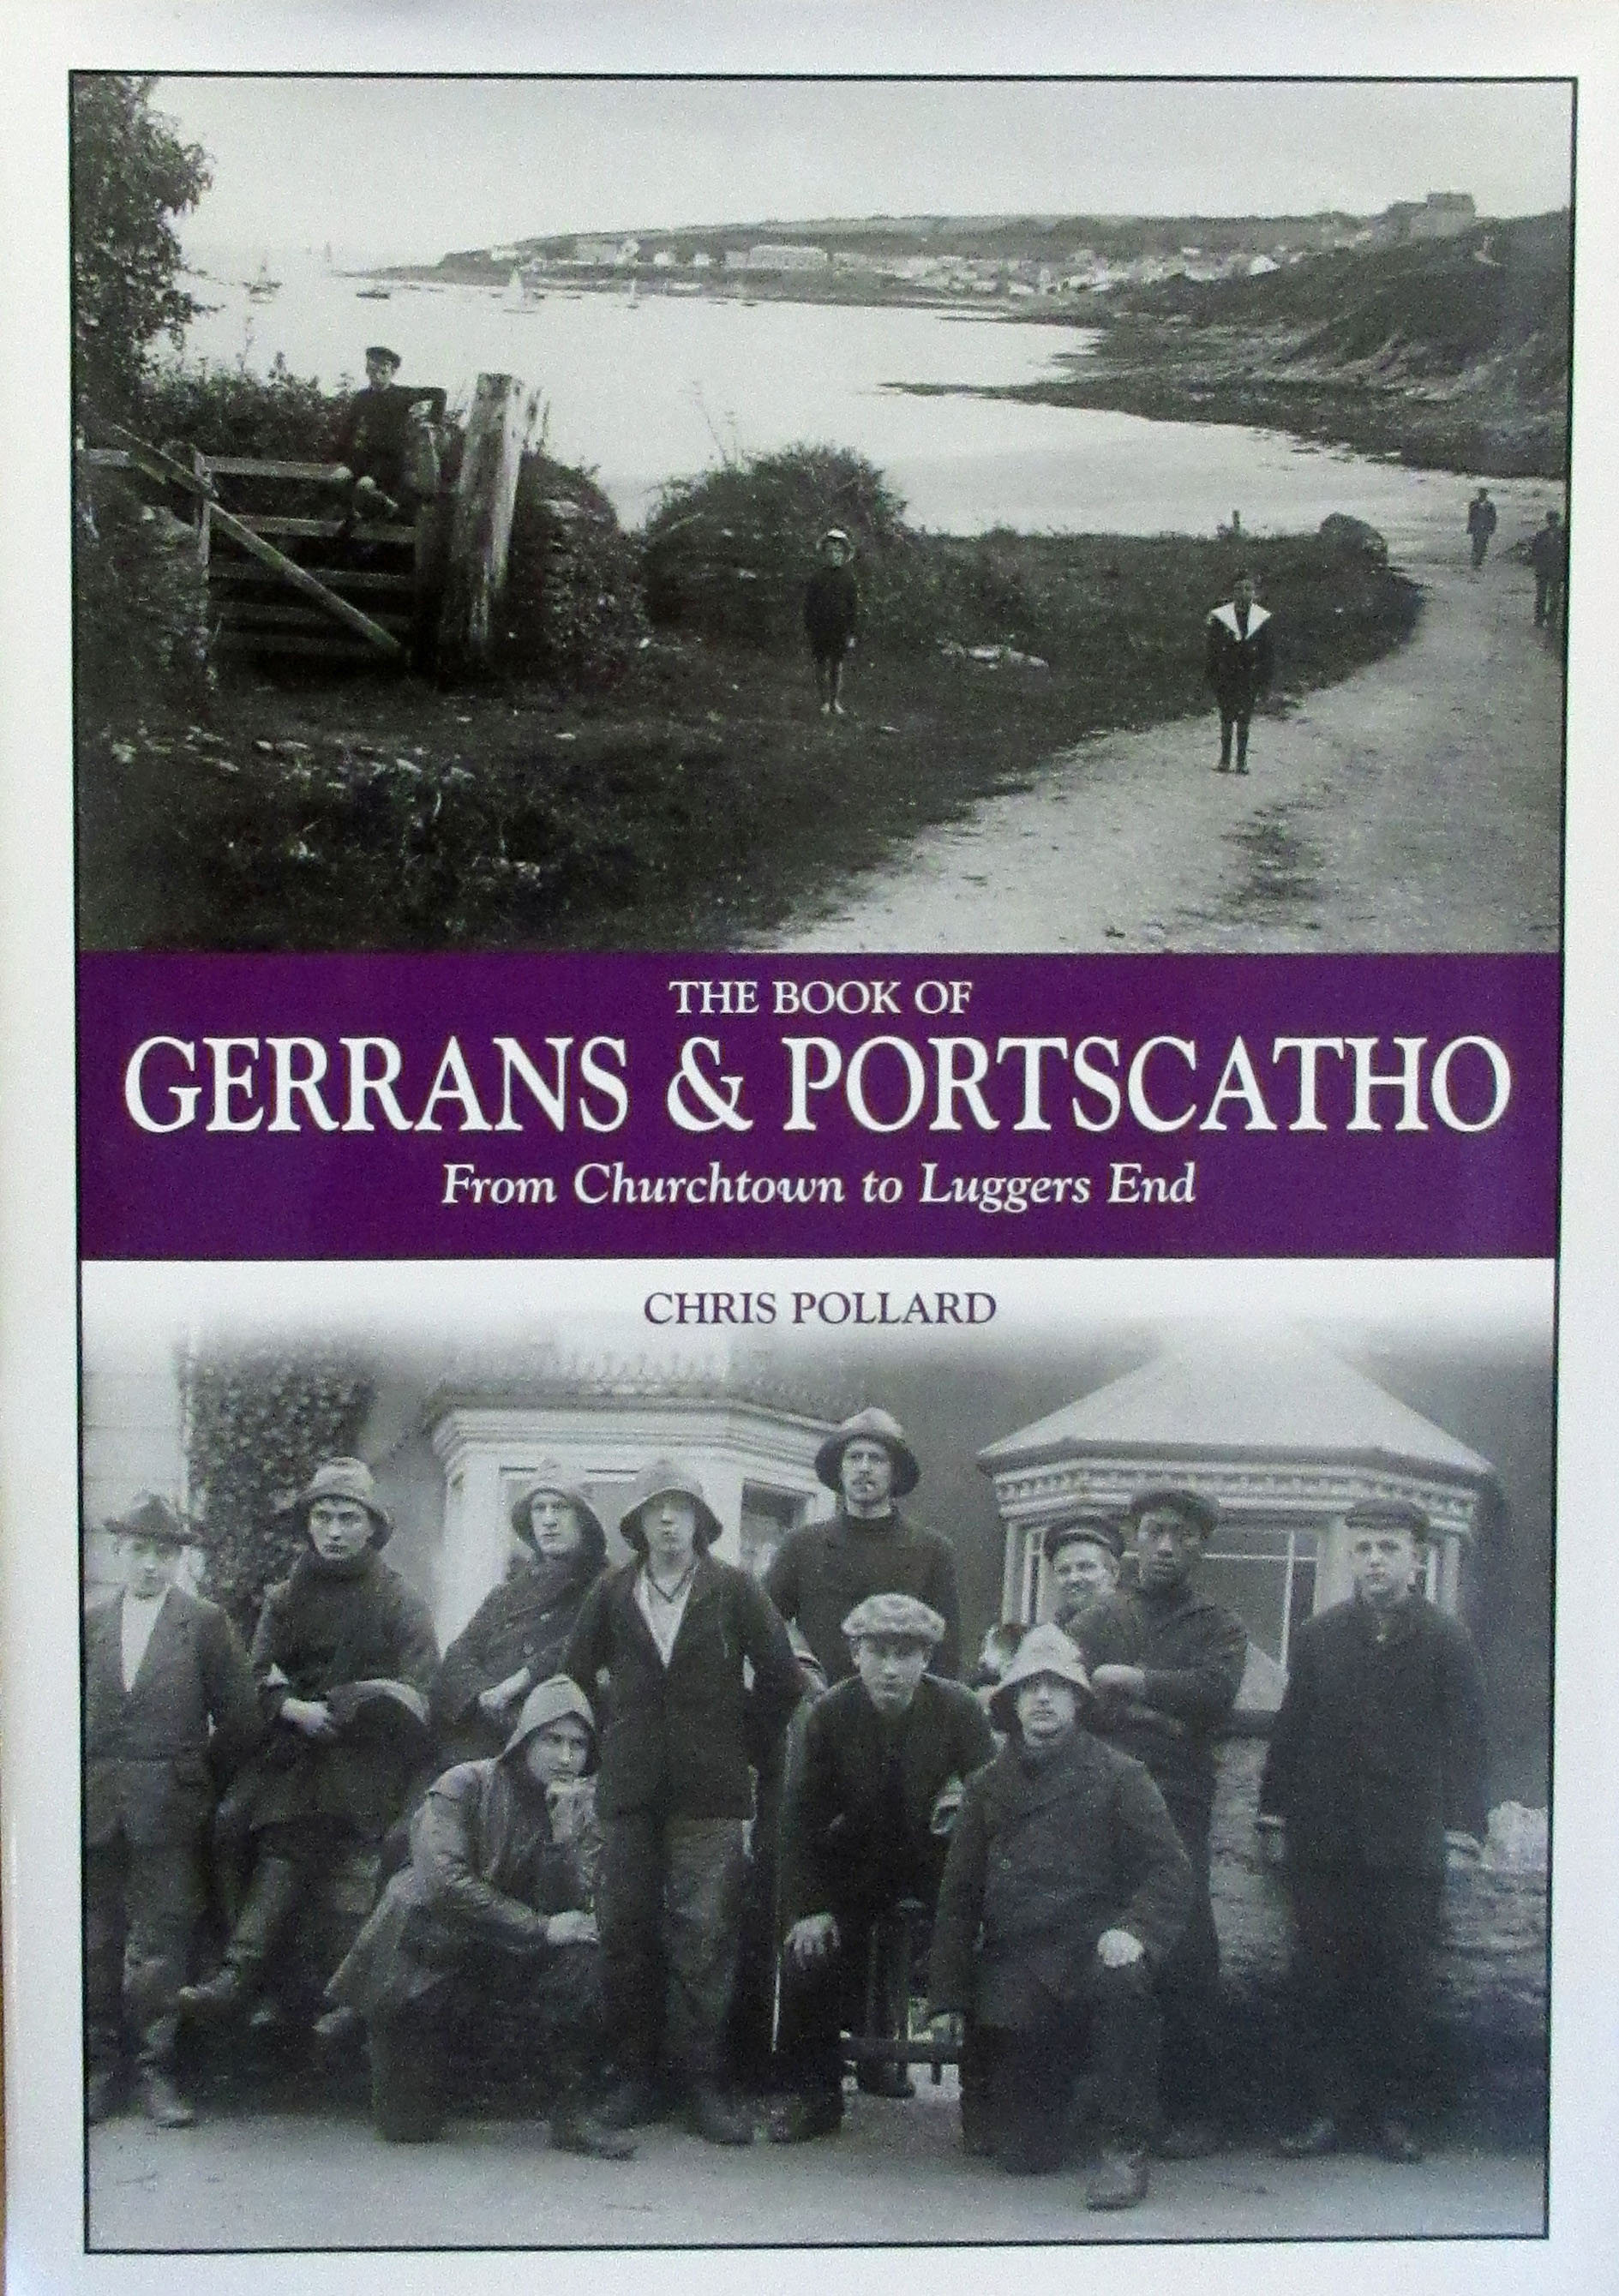 The Book of Gerrans & Portscatho